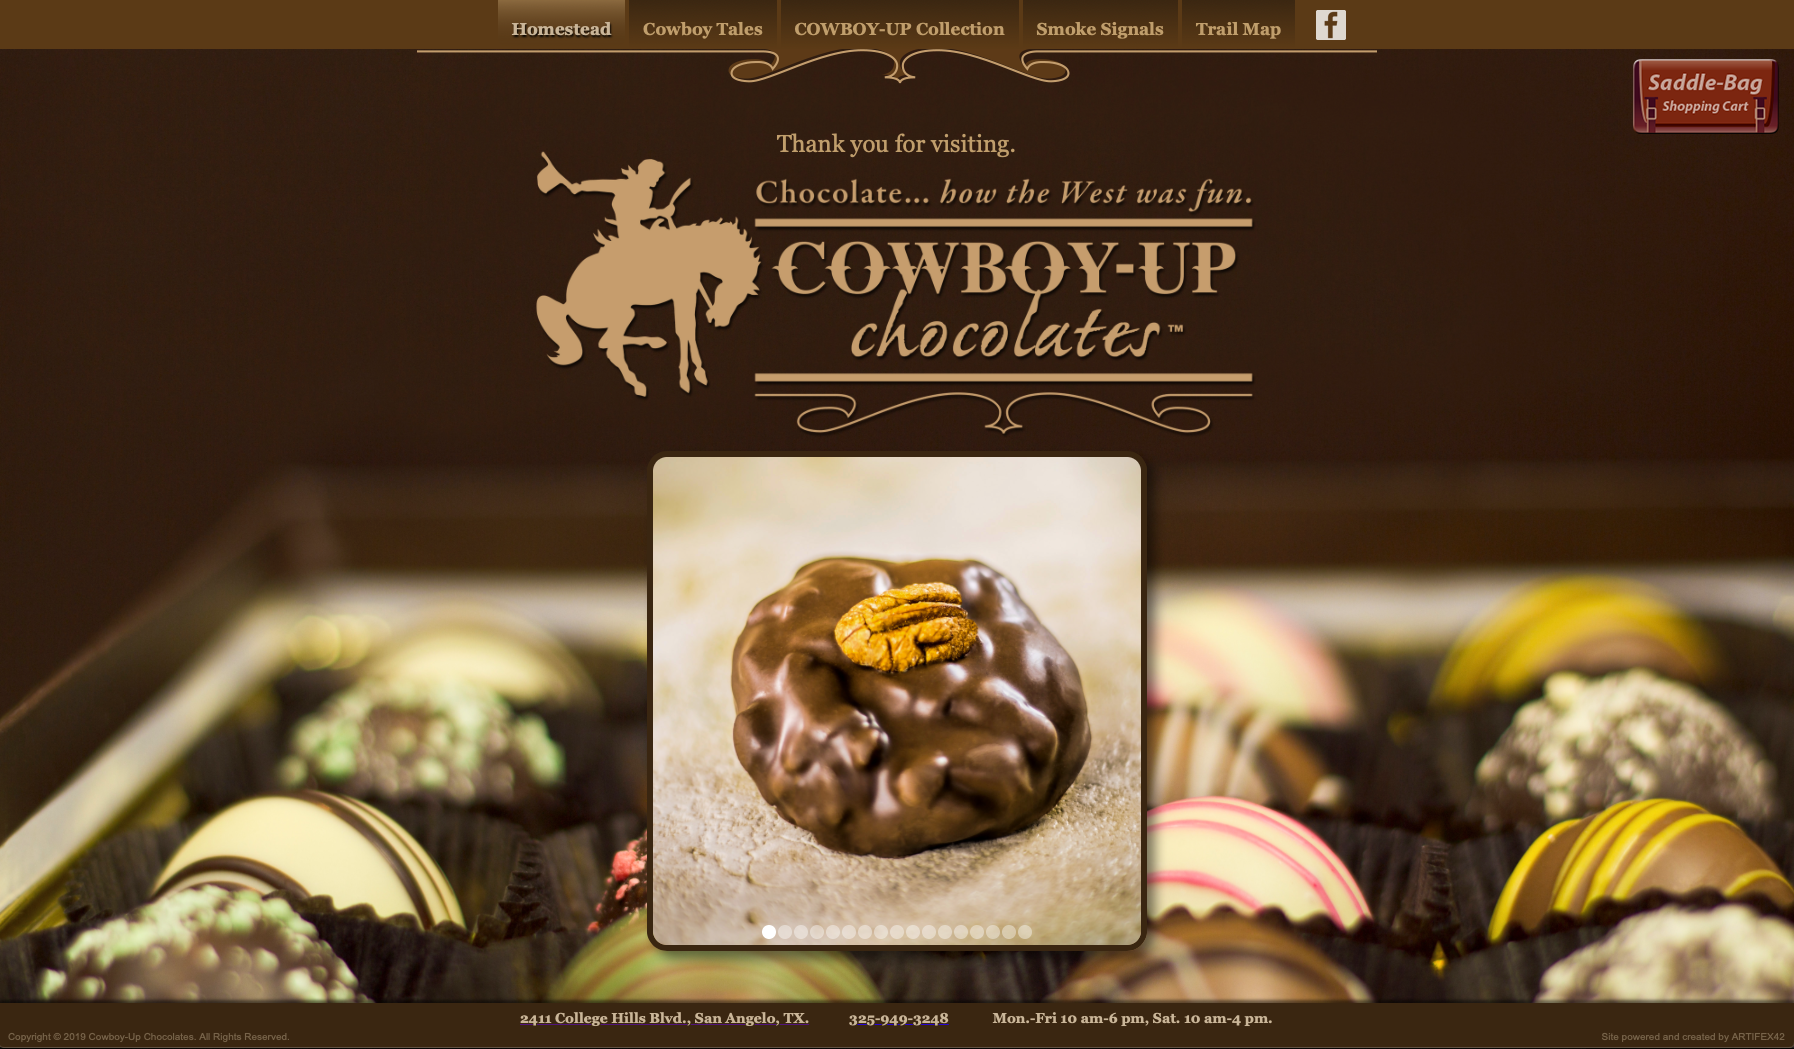 Cowboy-Up Chocolates